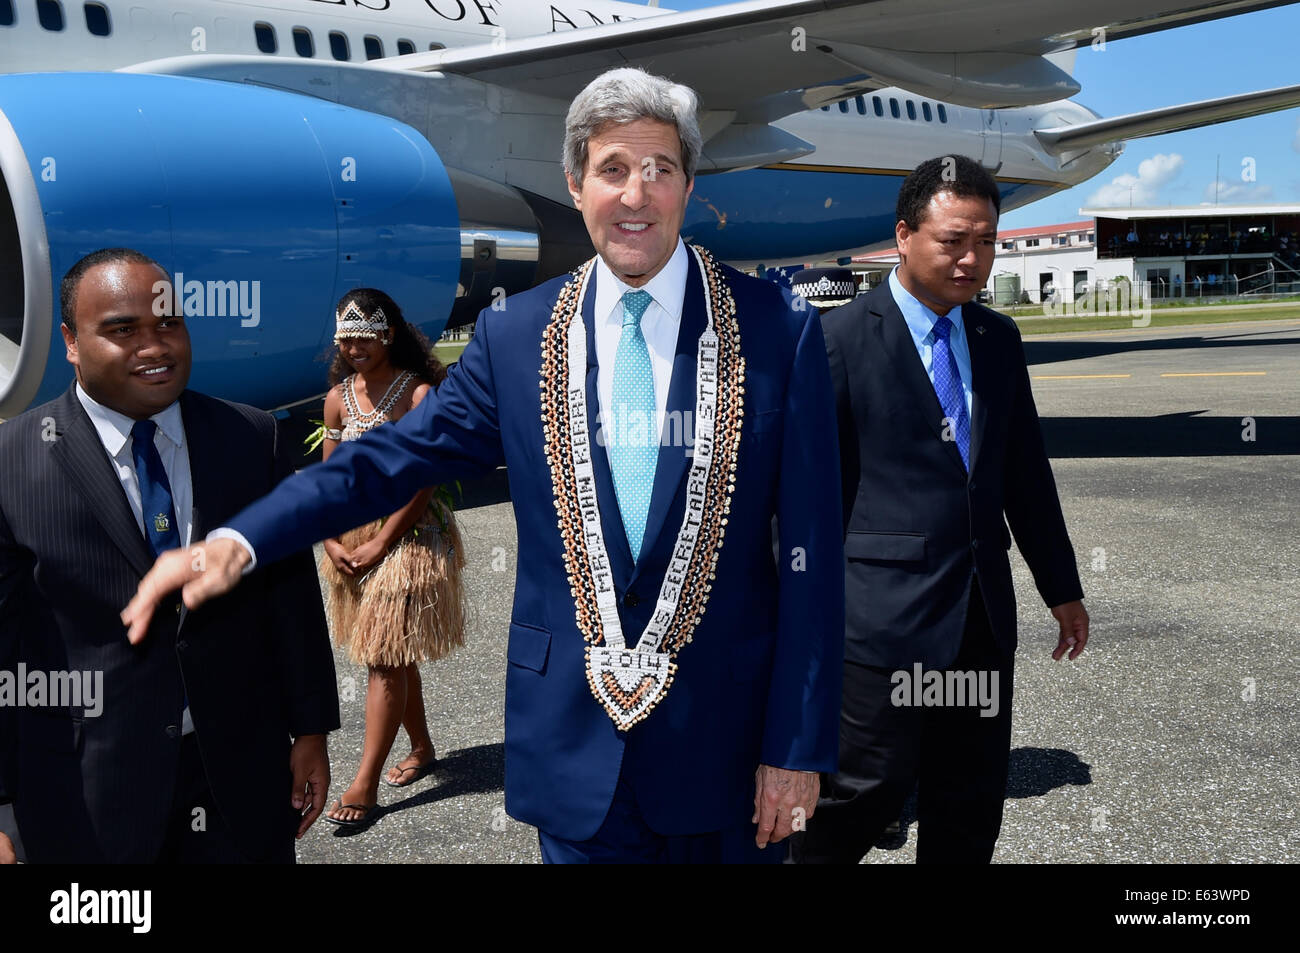 US Secretary of State John Kerry receives a traditional necklace as he arrives at Henderson International Airport - Stock Image